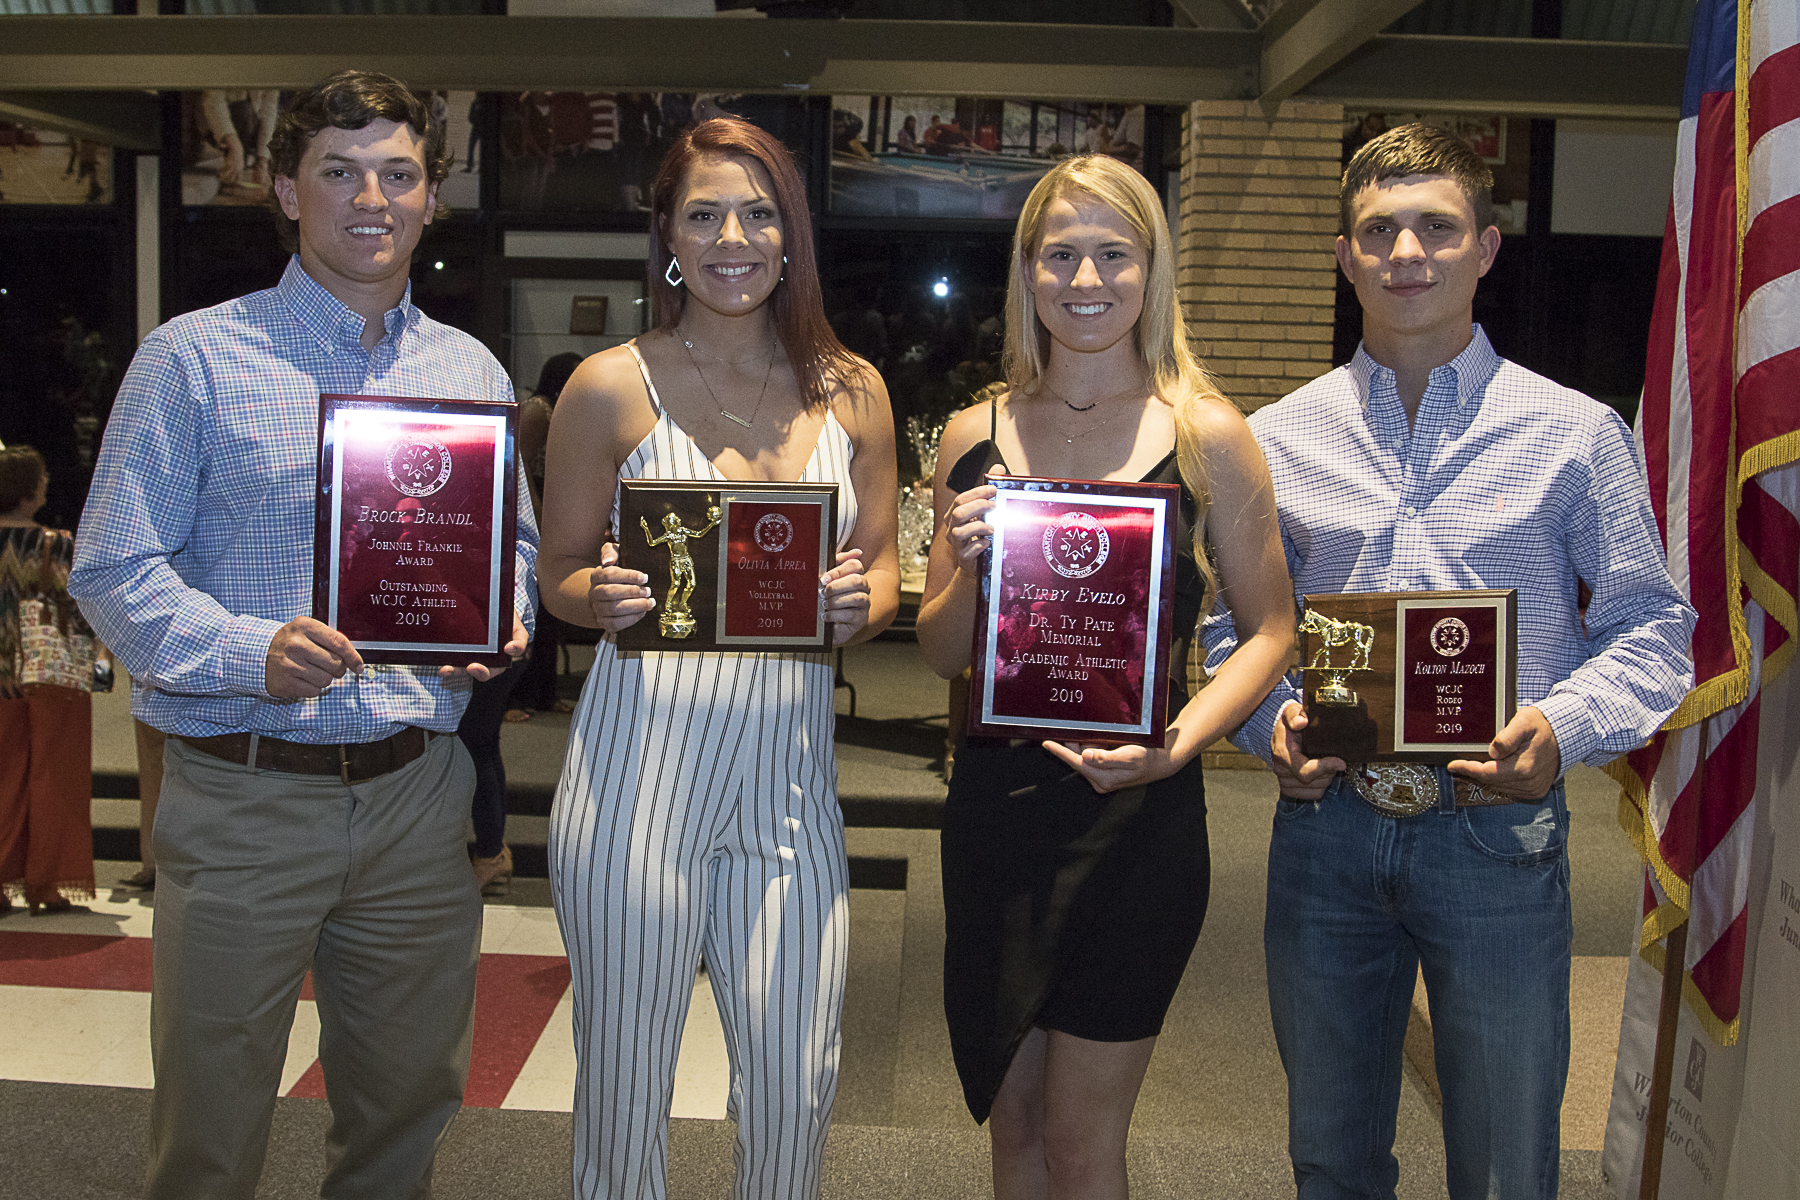 ATHLETIC ACCOMPLISHMENT - WCJC recognizes student athletes at annual event